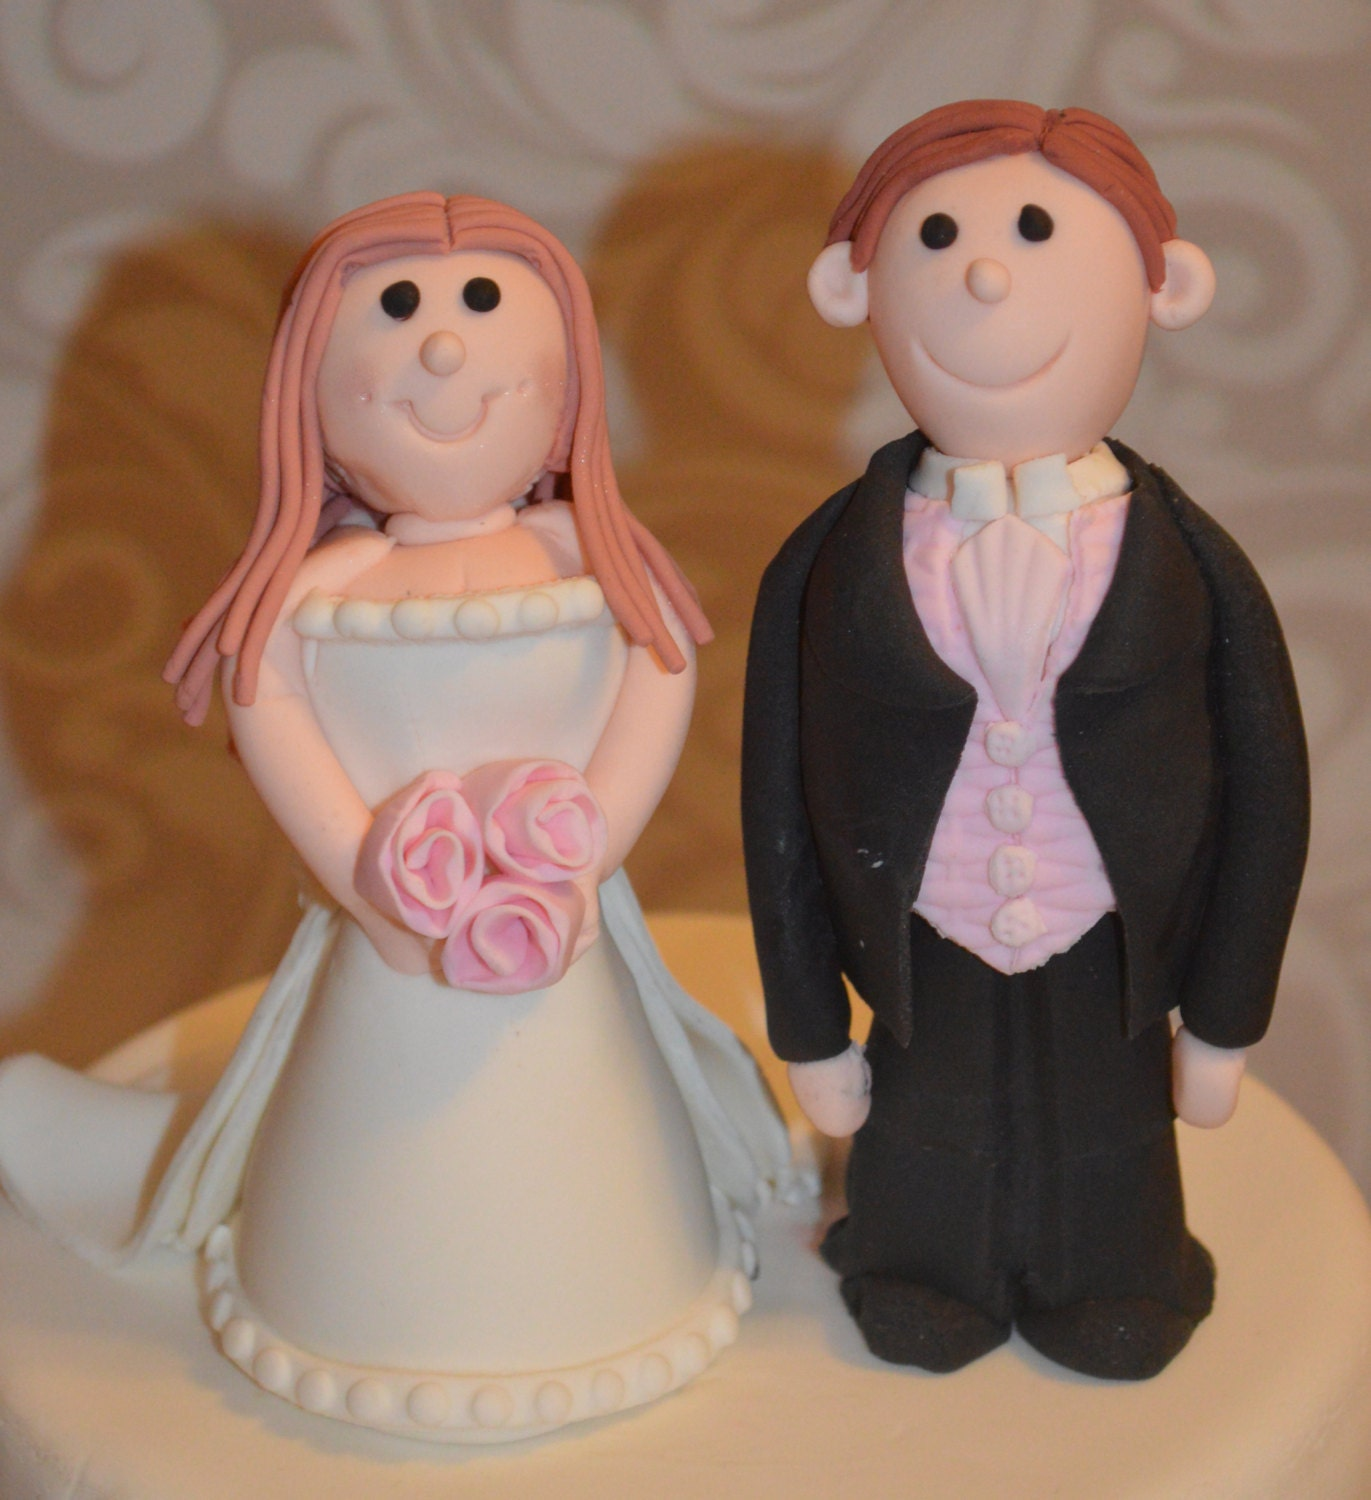 Make Your Own Wedding Topper: Custom Fondant Bride And Groom Wedding Cake Topper This Topper